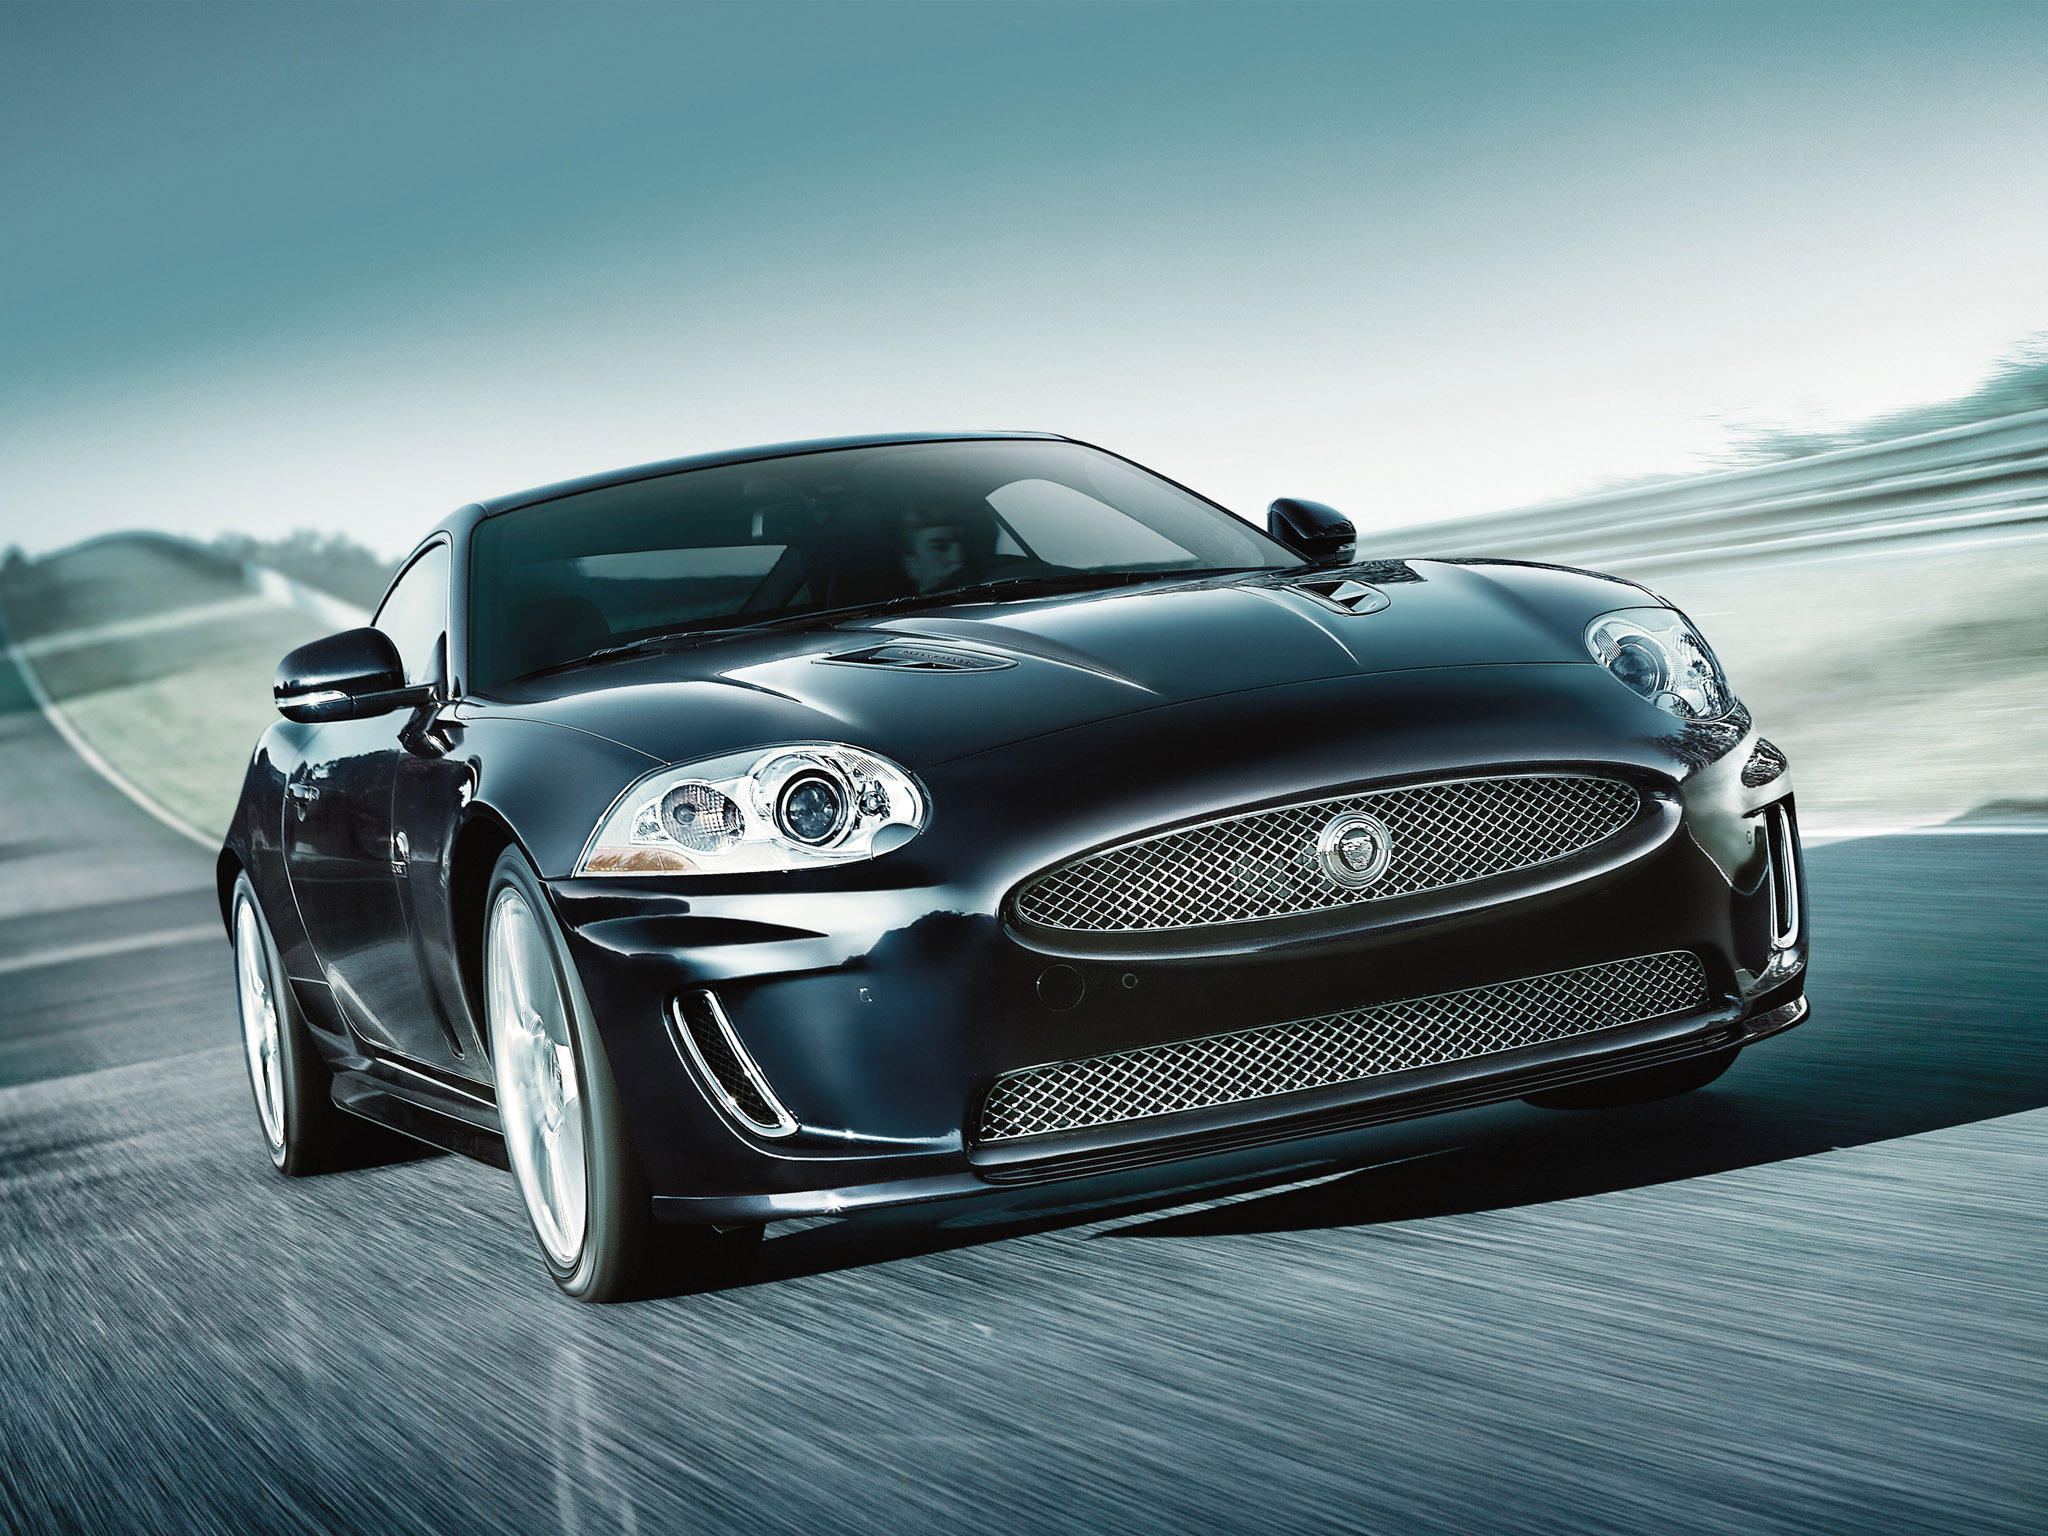 Jaguar Xkr 175 Coupe Usa 2010 Wallpaper For Iphone Wallpaper